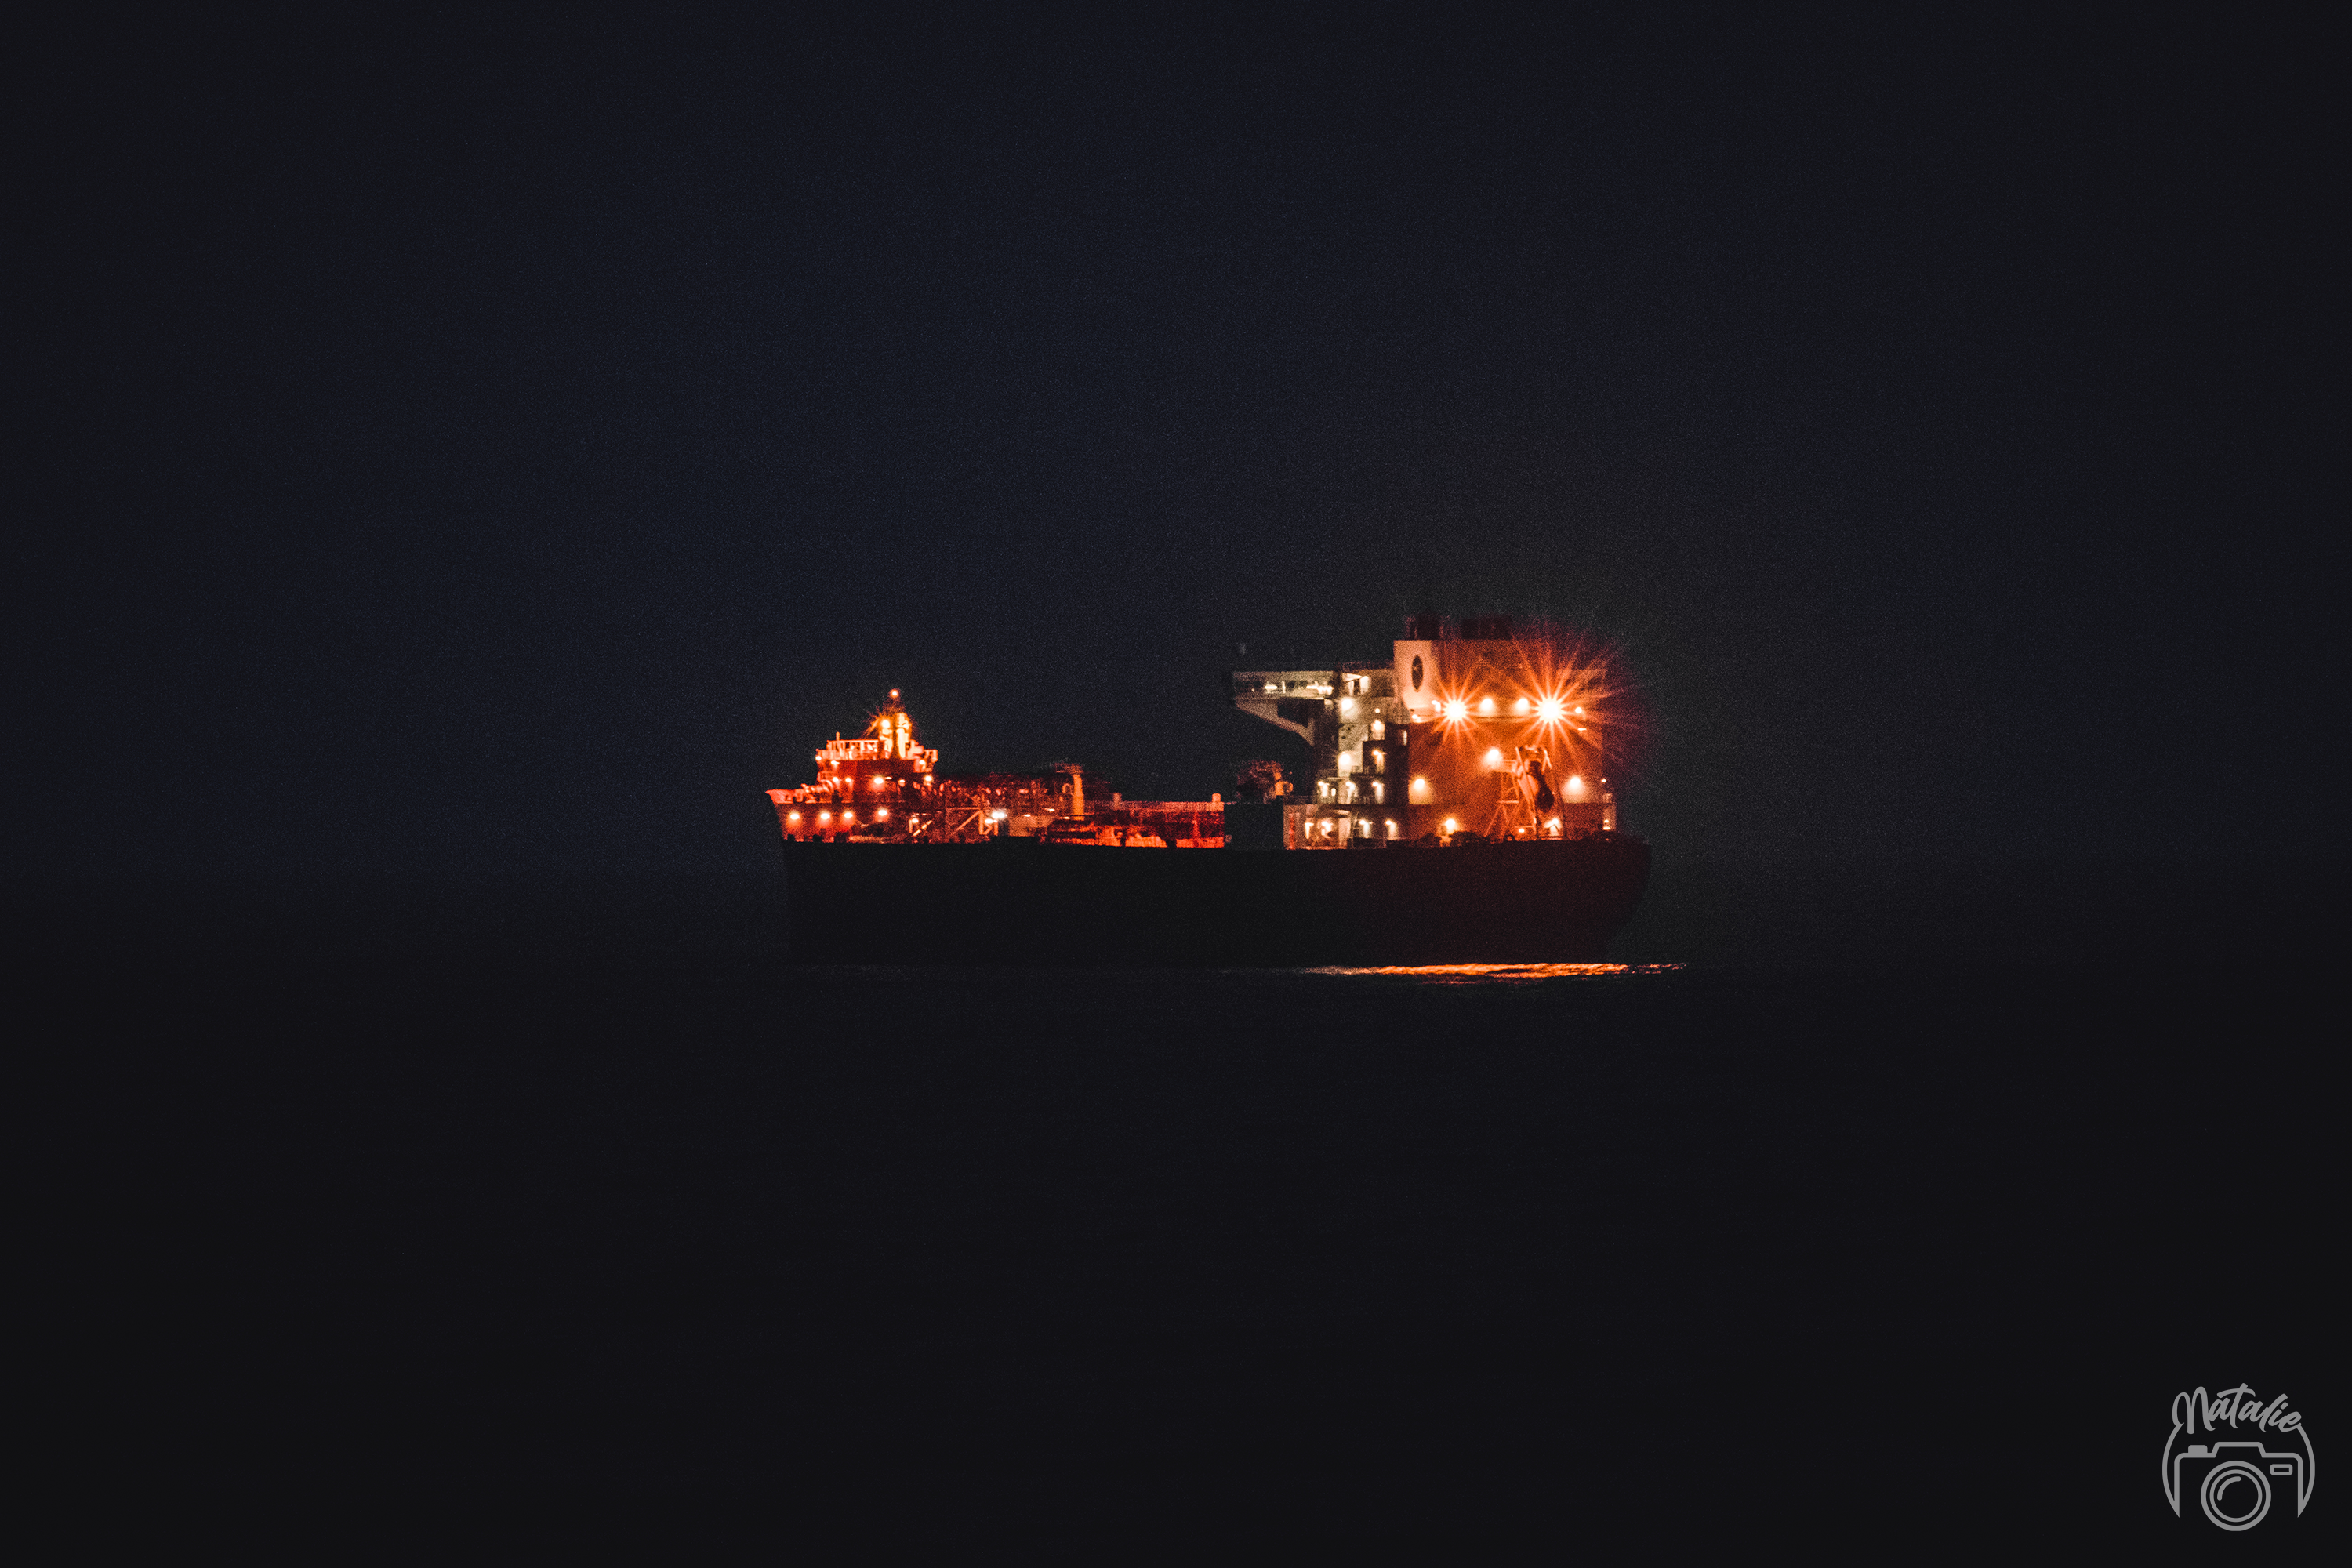 Transporting ship with glowing lights in pitch-black night on the ocean